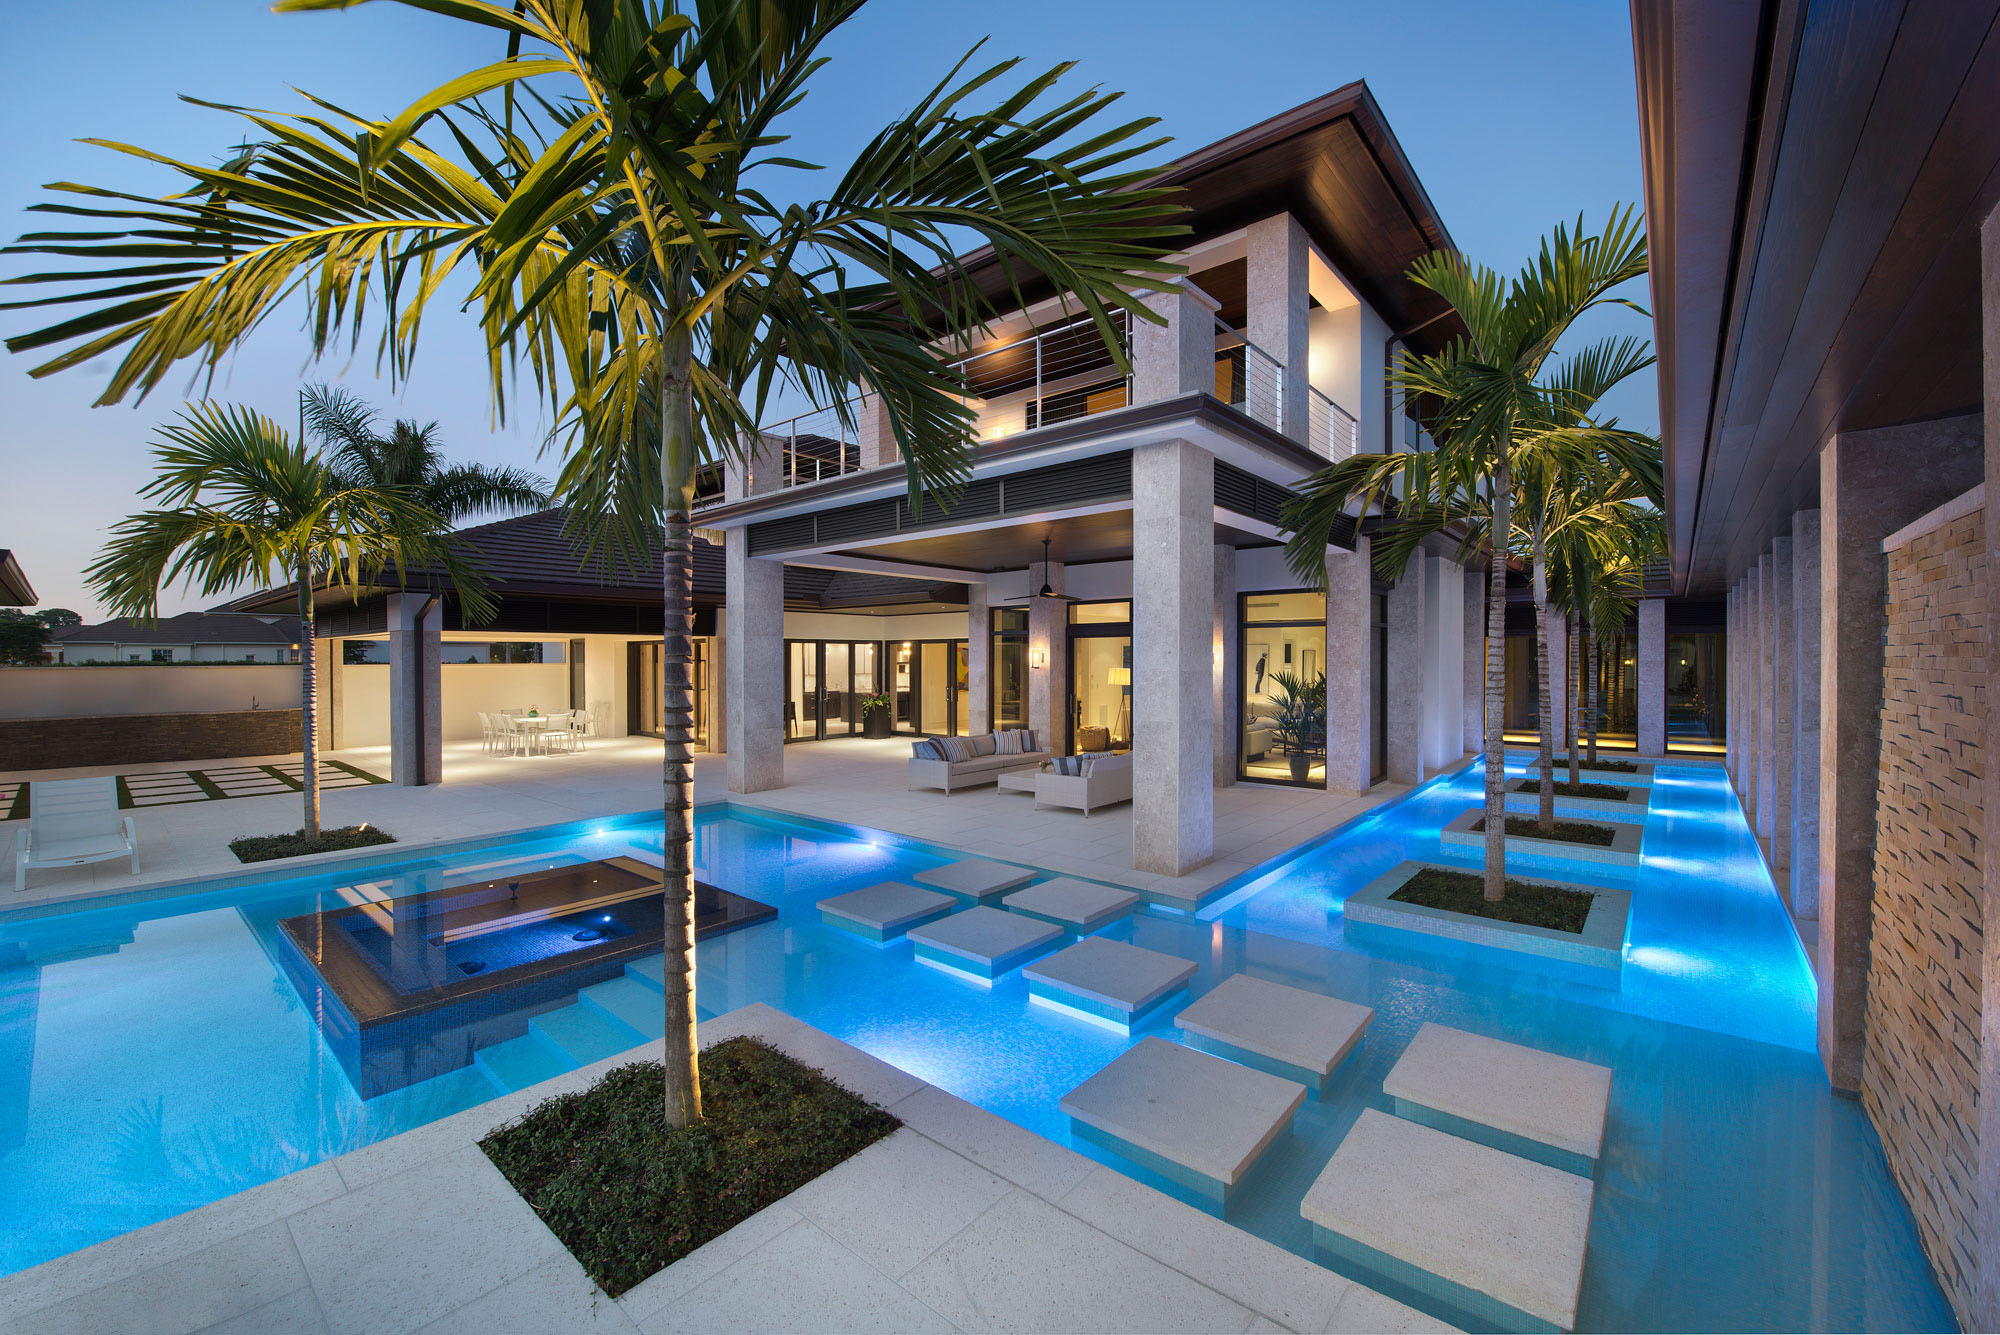 Custom dream home in florida with elegant swimming pool for Modern houses in florida